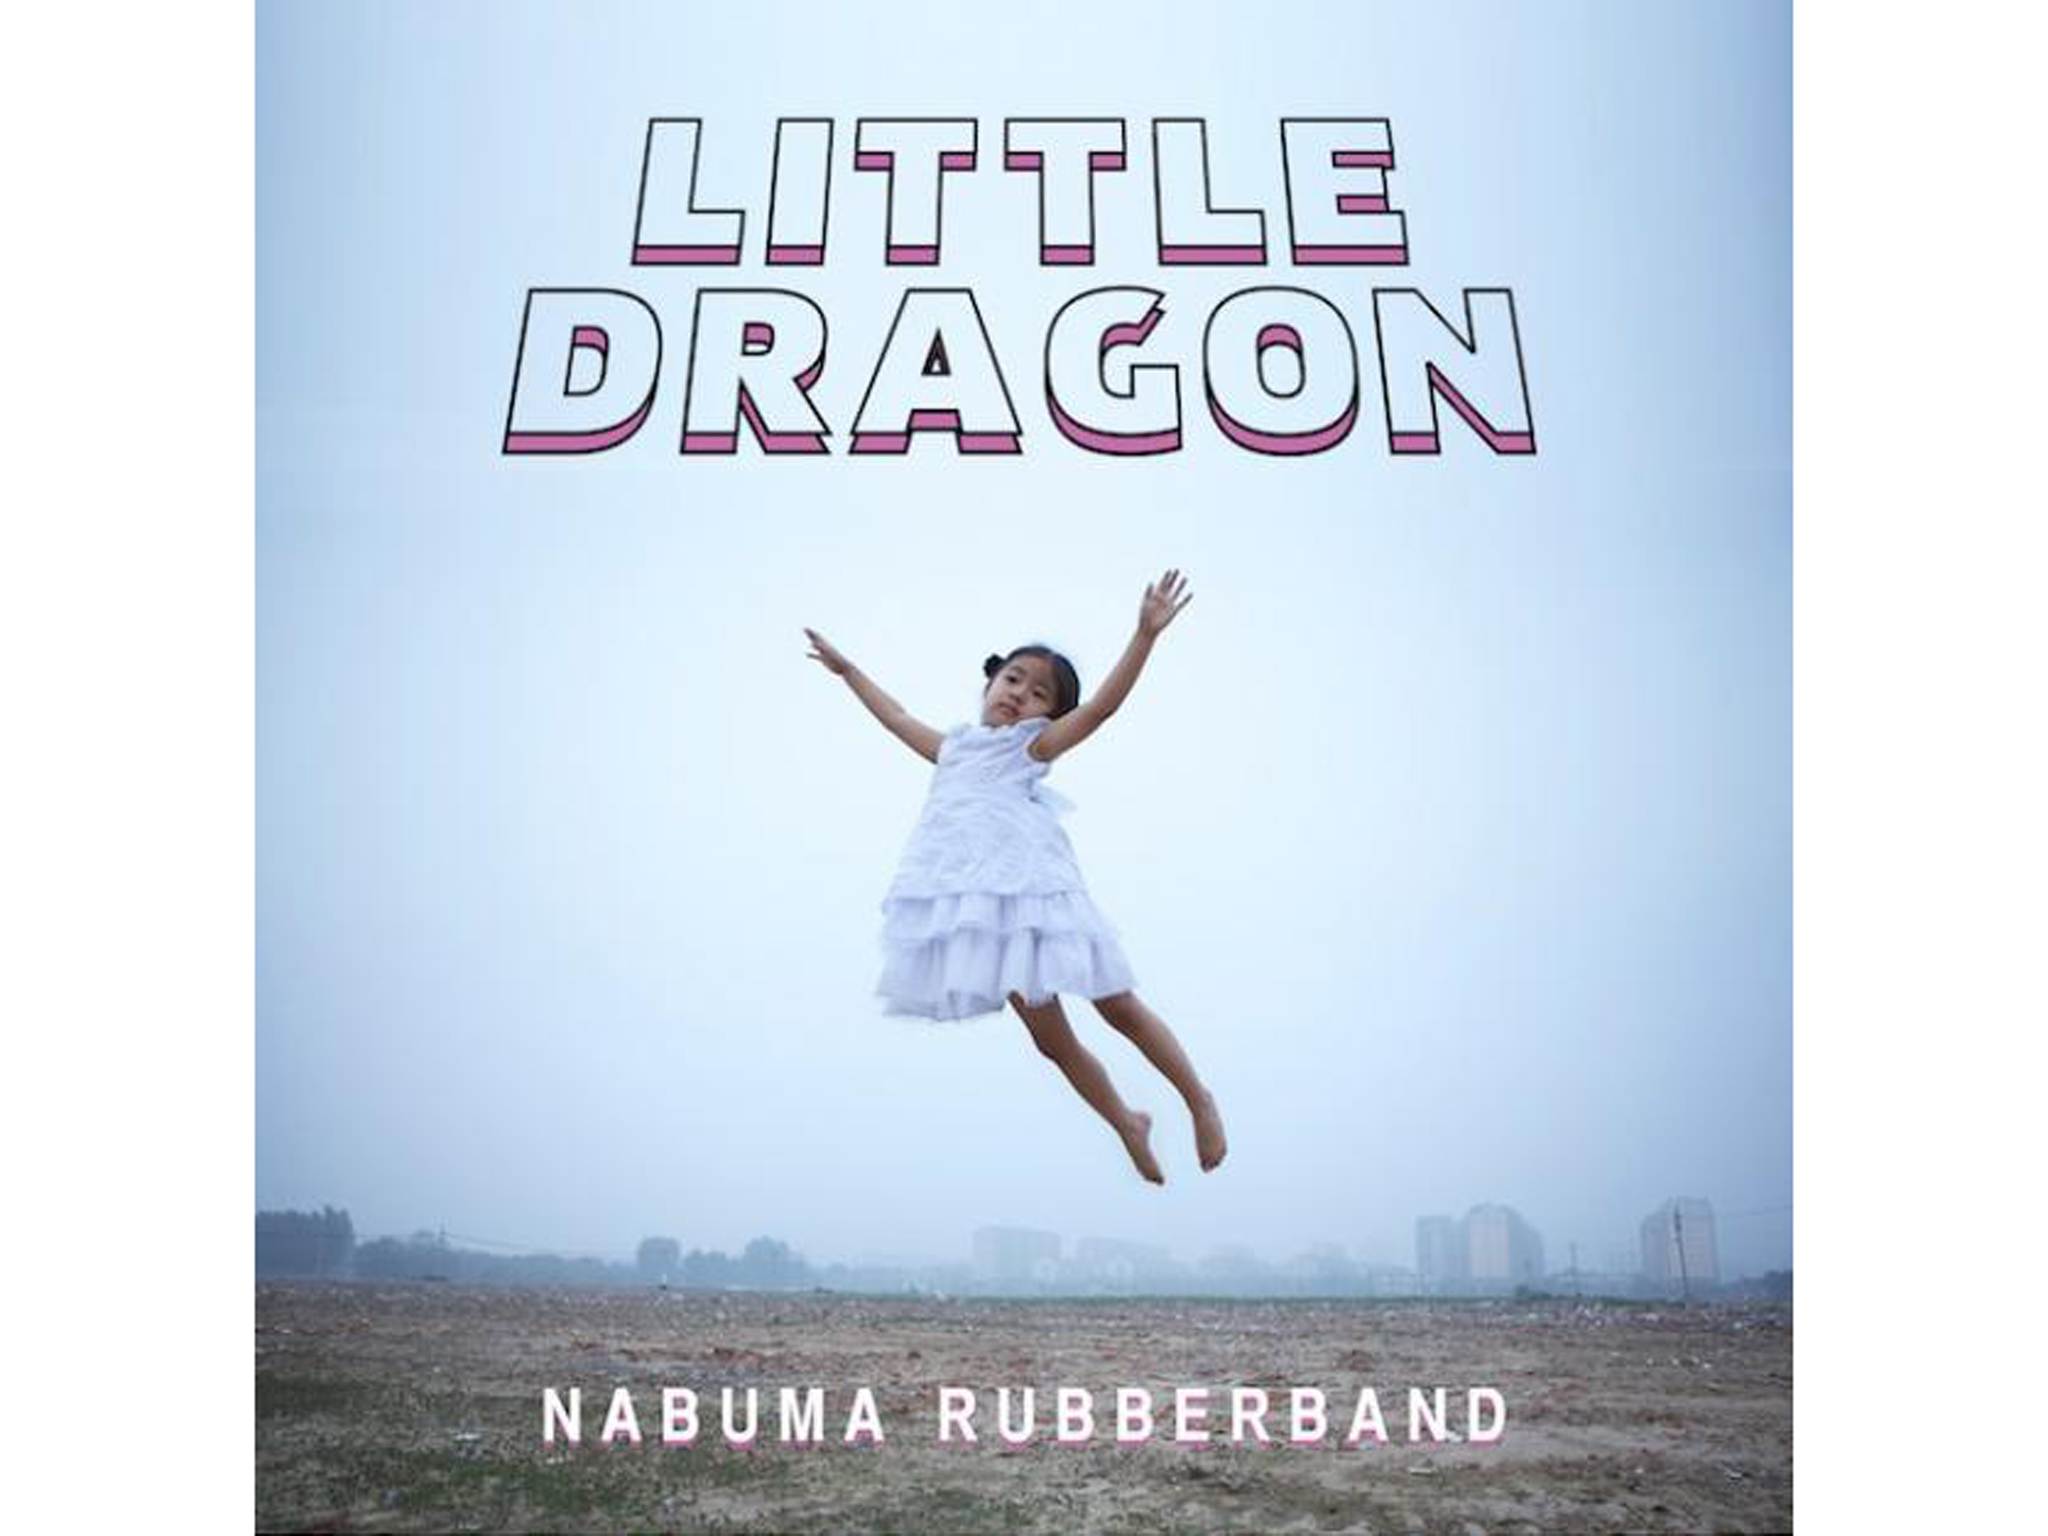 Nabuma Rubberband album by Little Dragon